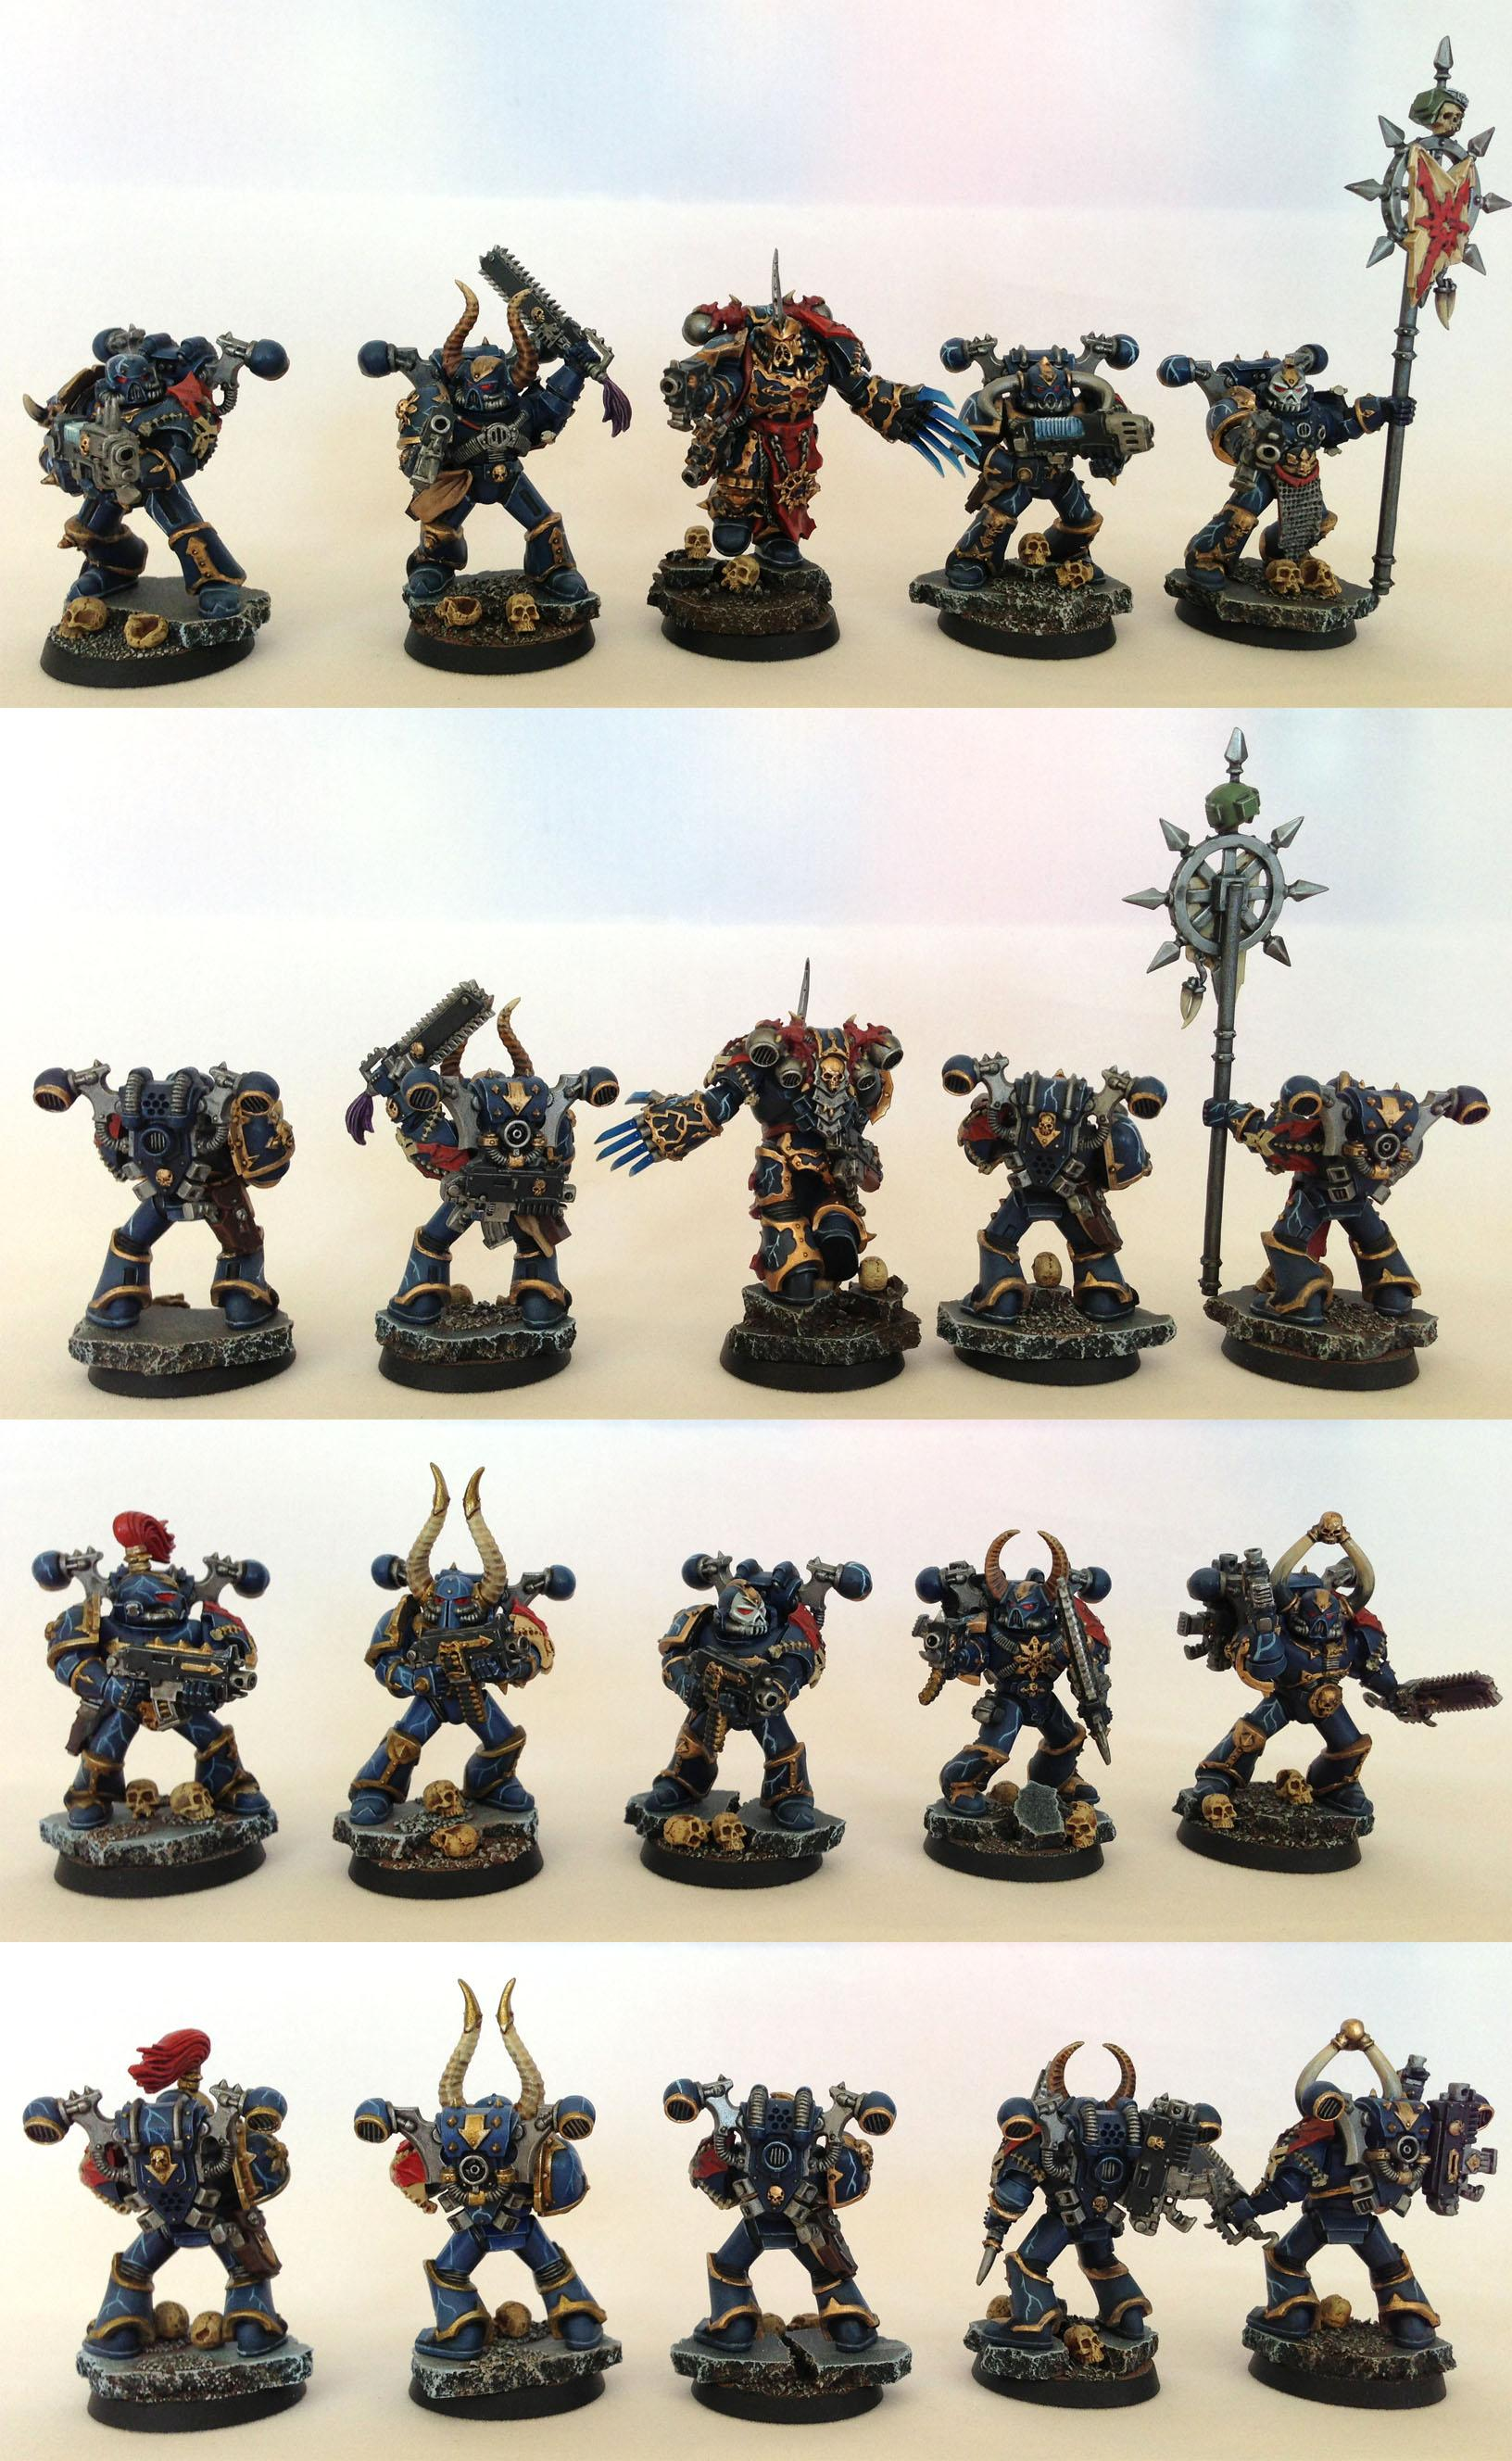 Bolt Pistol, Bolters, Chainsword, Chaos Space Marines, Icon, Lightning Claw, Night Lords, Plasma Gun